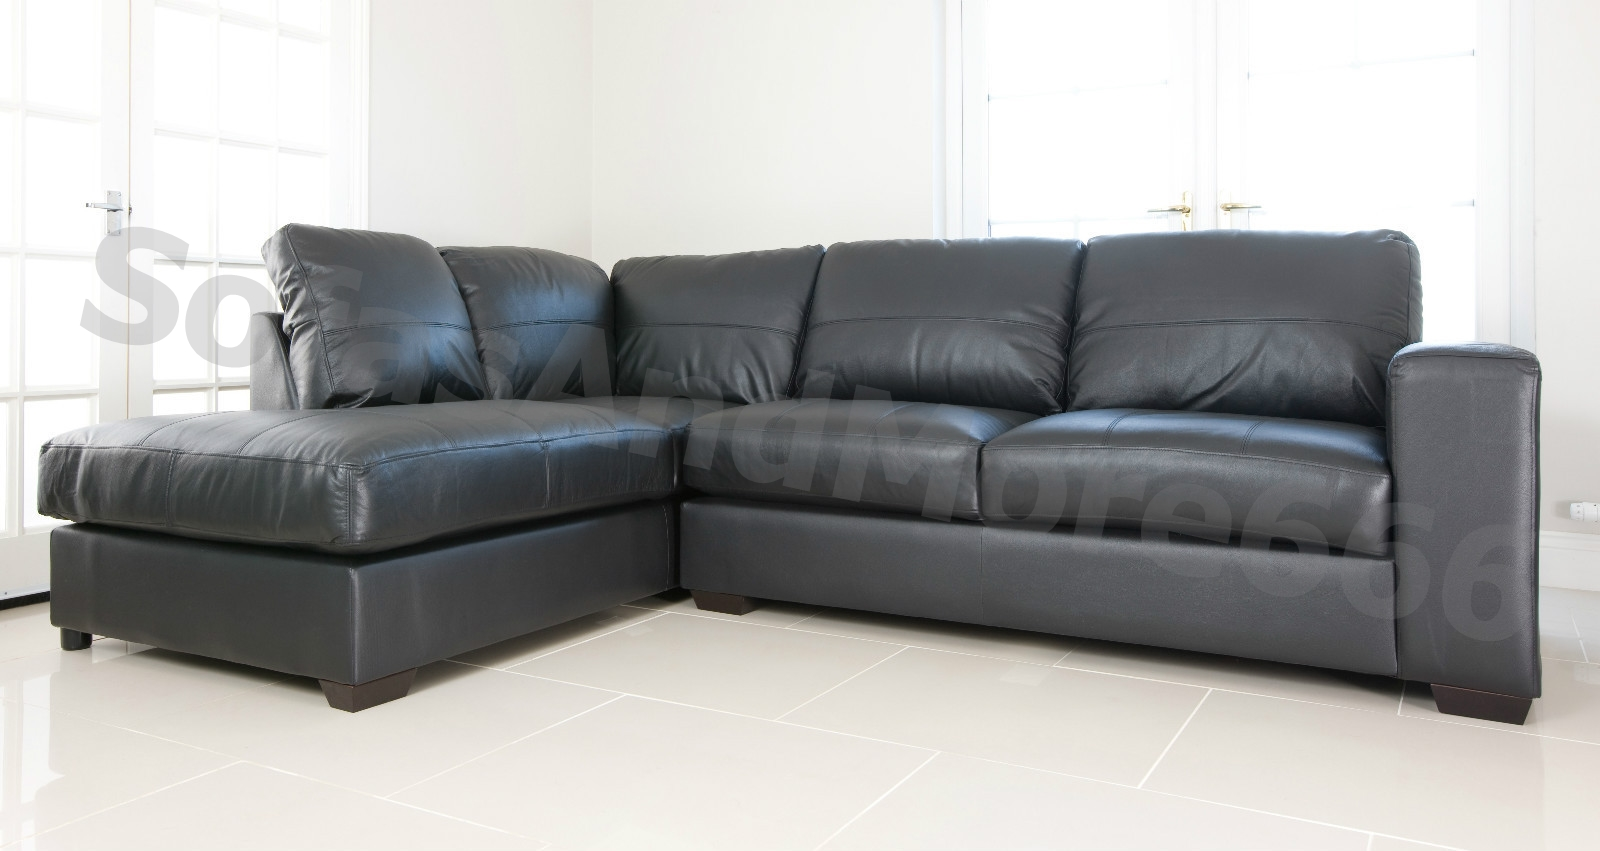 Cheap leather sofas argos cheap black leather corner sofa for Black leather sectional sofa uk